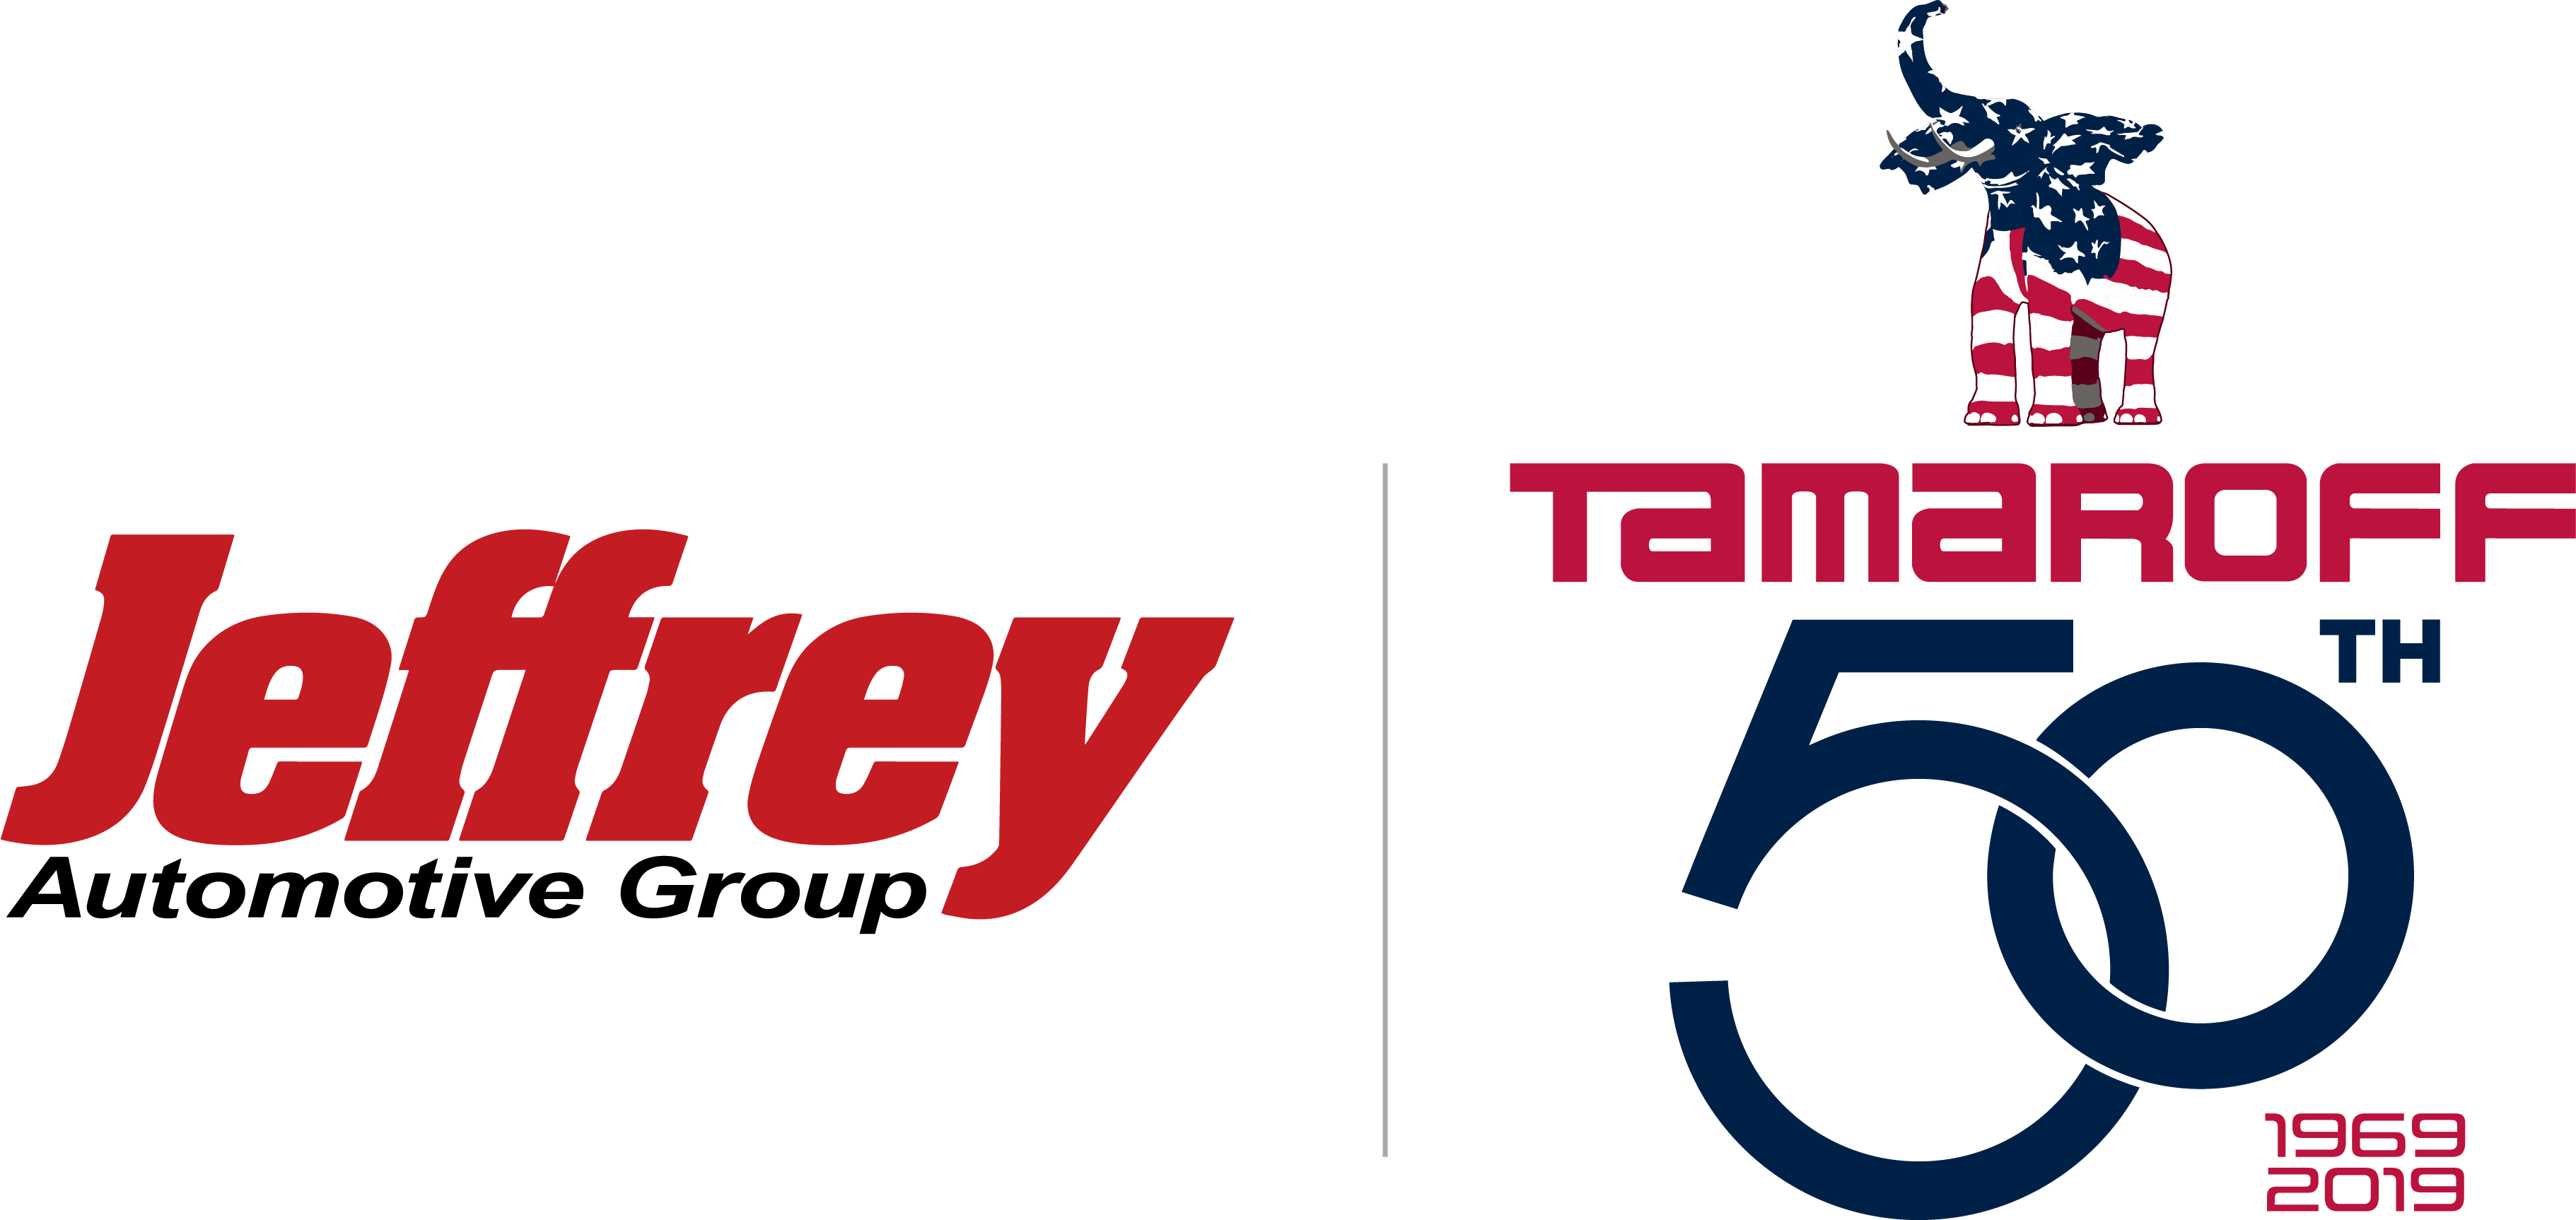 Tamaroff Automotive Family